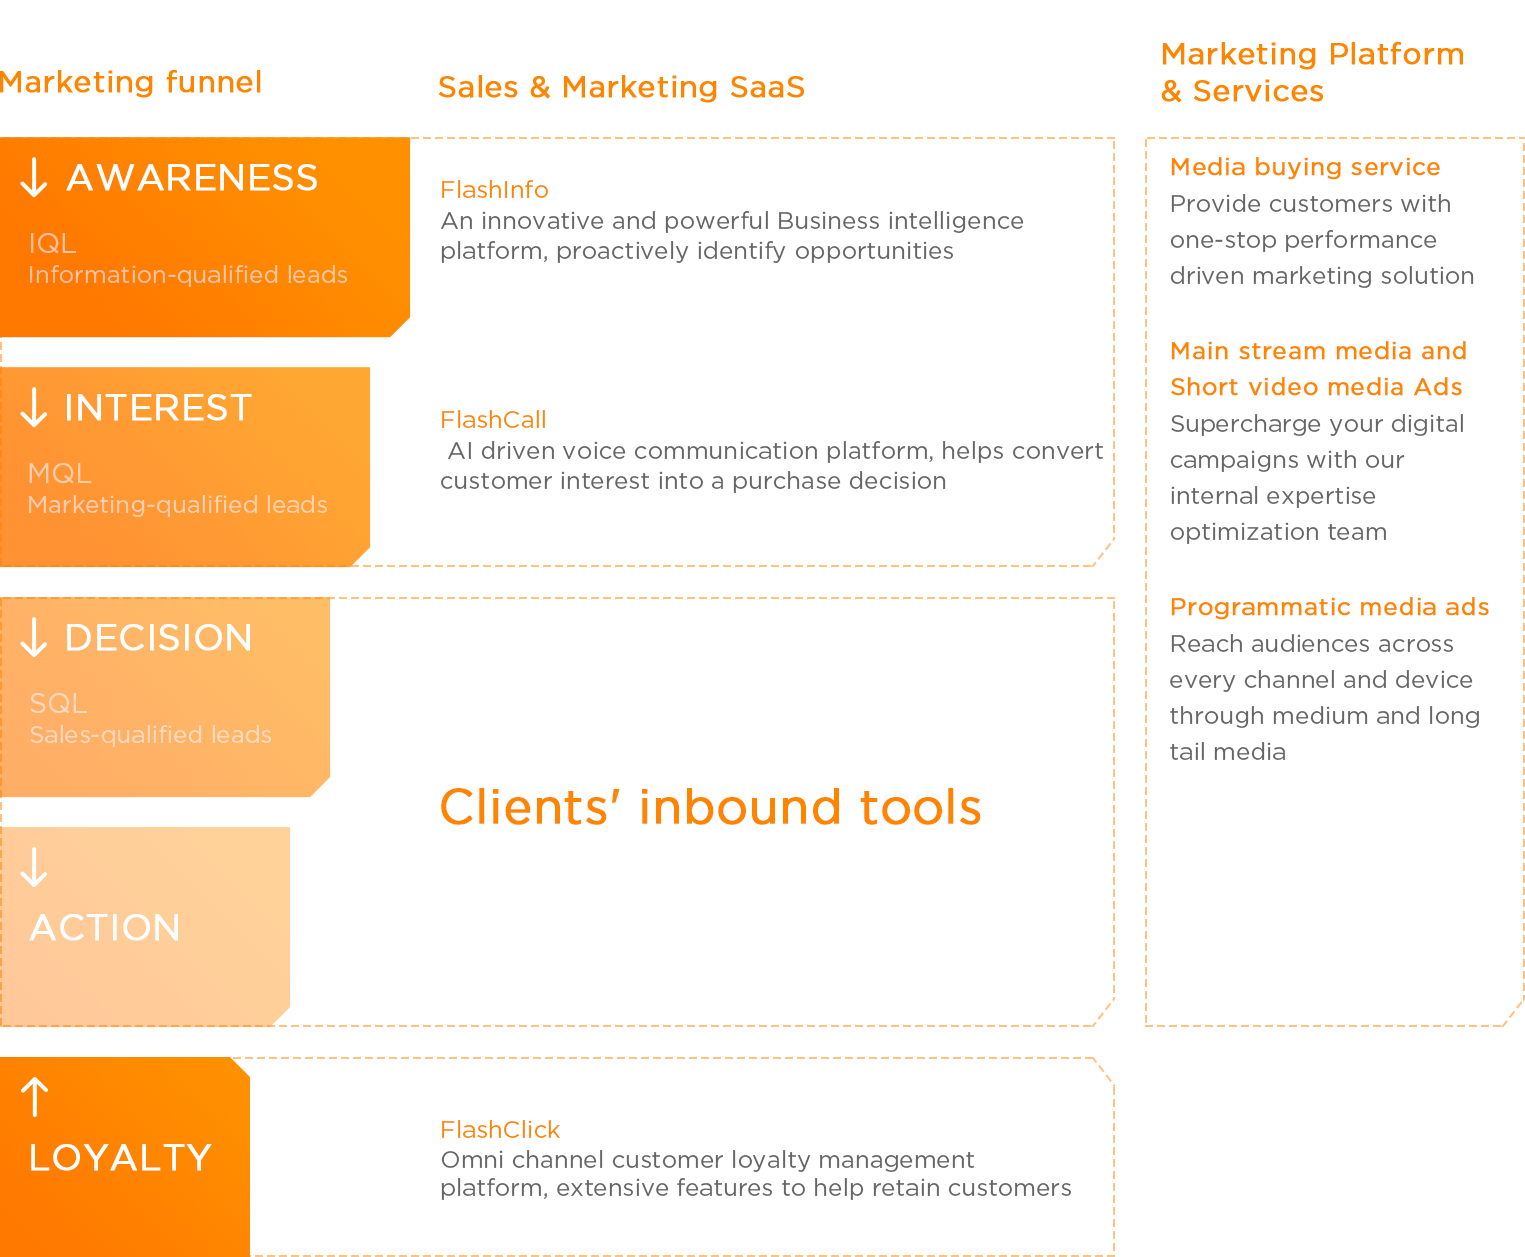 Marketing Ecosystem structure consists with Marketing funnel、Sales & Marketing SaaS, and Marketing Platform & Services 3 parts.